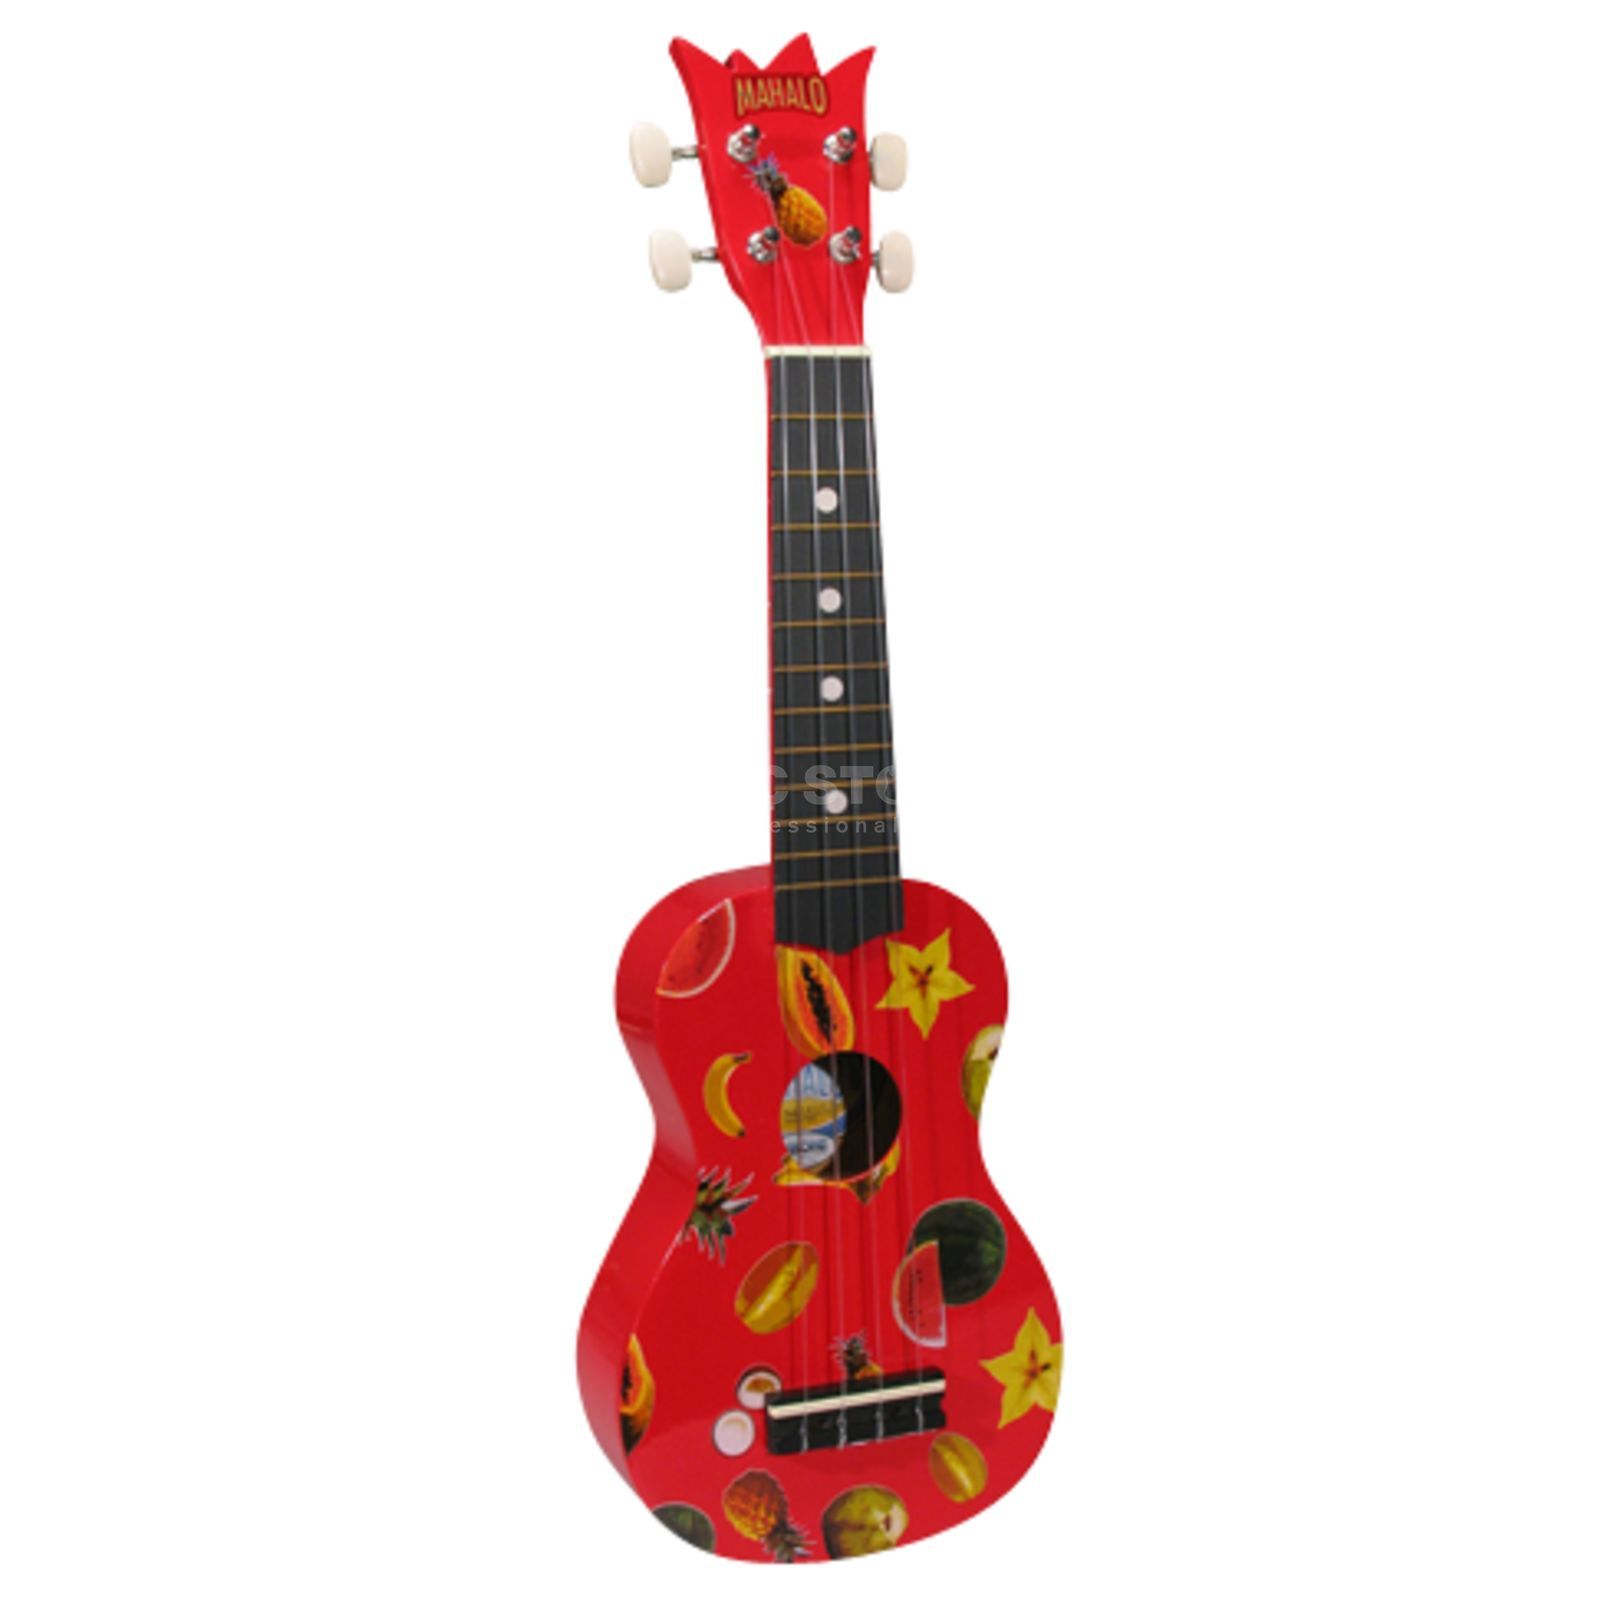 Mahalo U1-KIT-RD Red Sopranukulele inkl.Bag,DVD,Picks,Stimmpfeife Produktbild